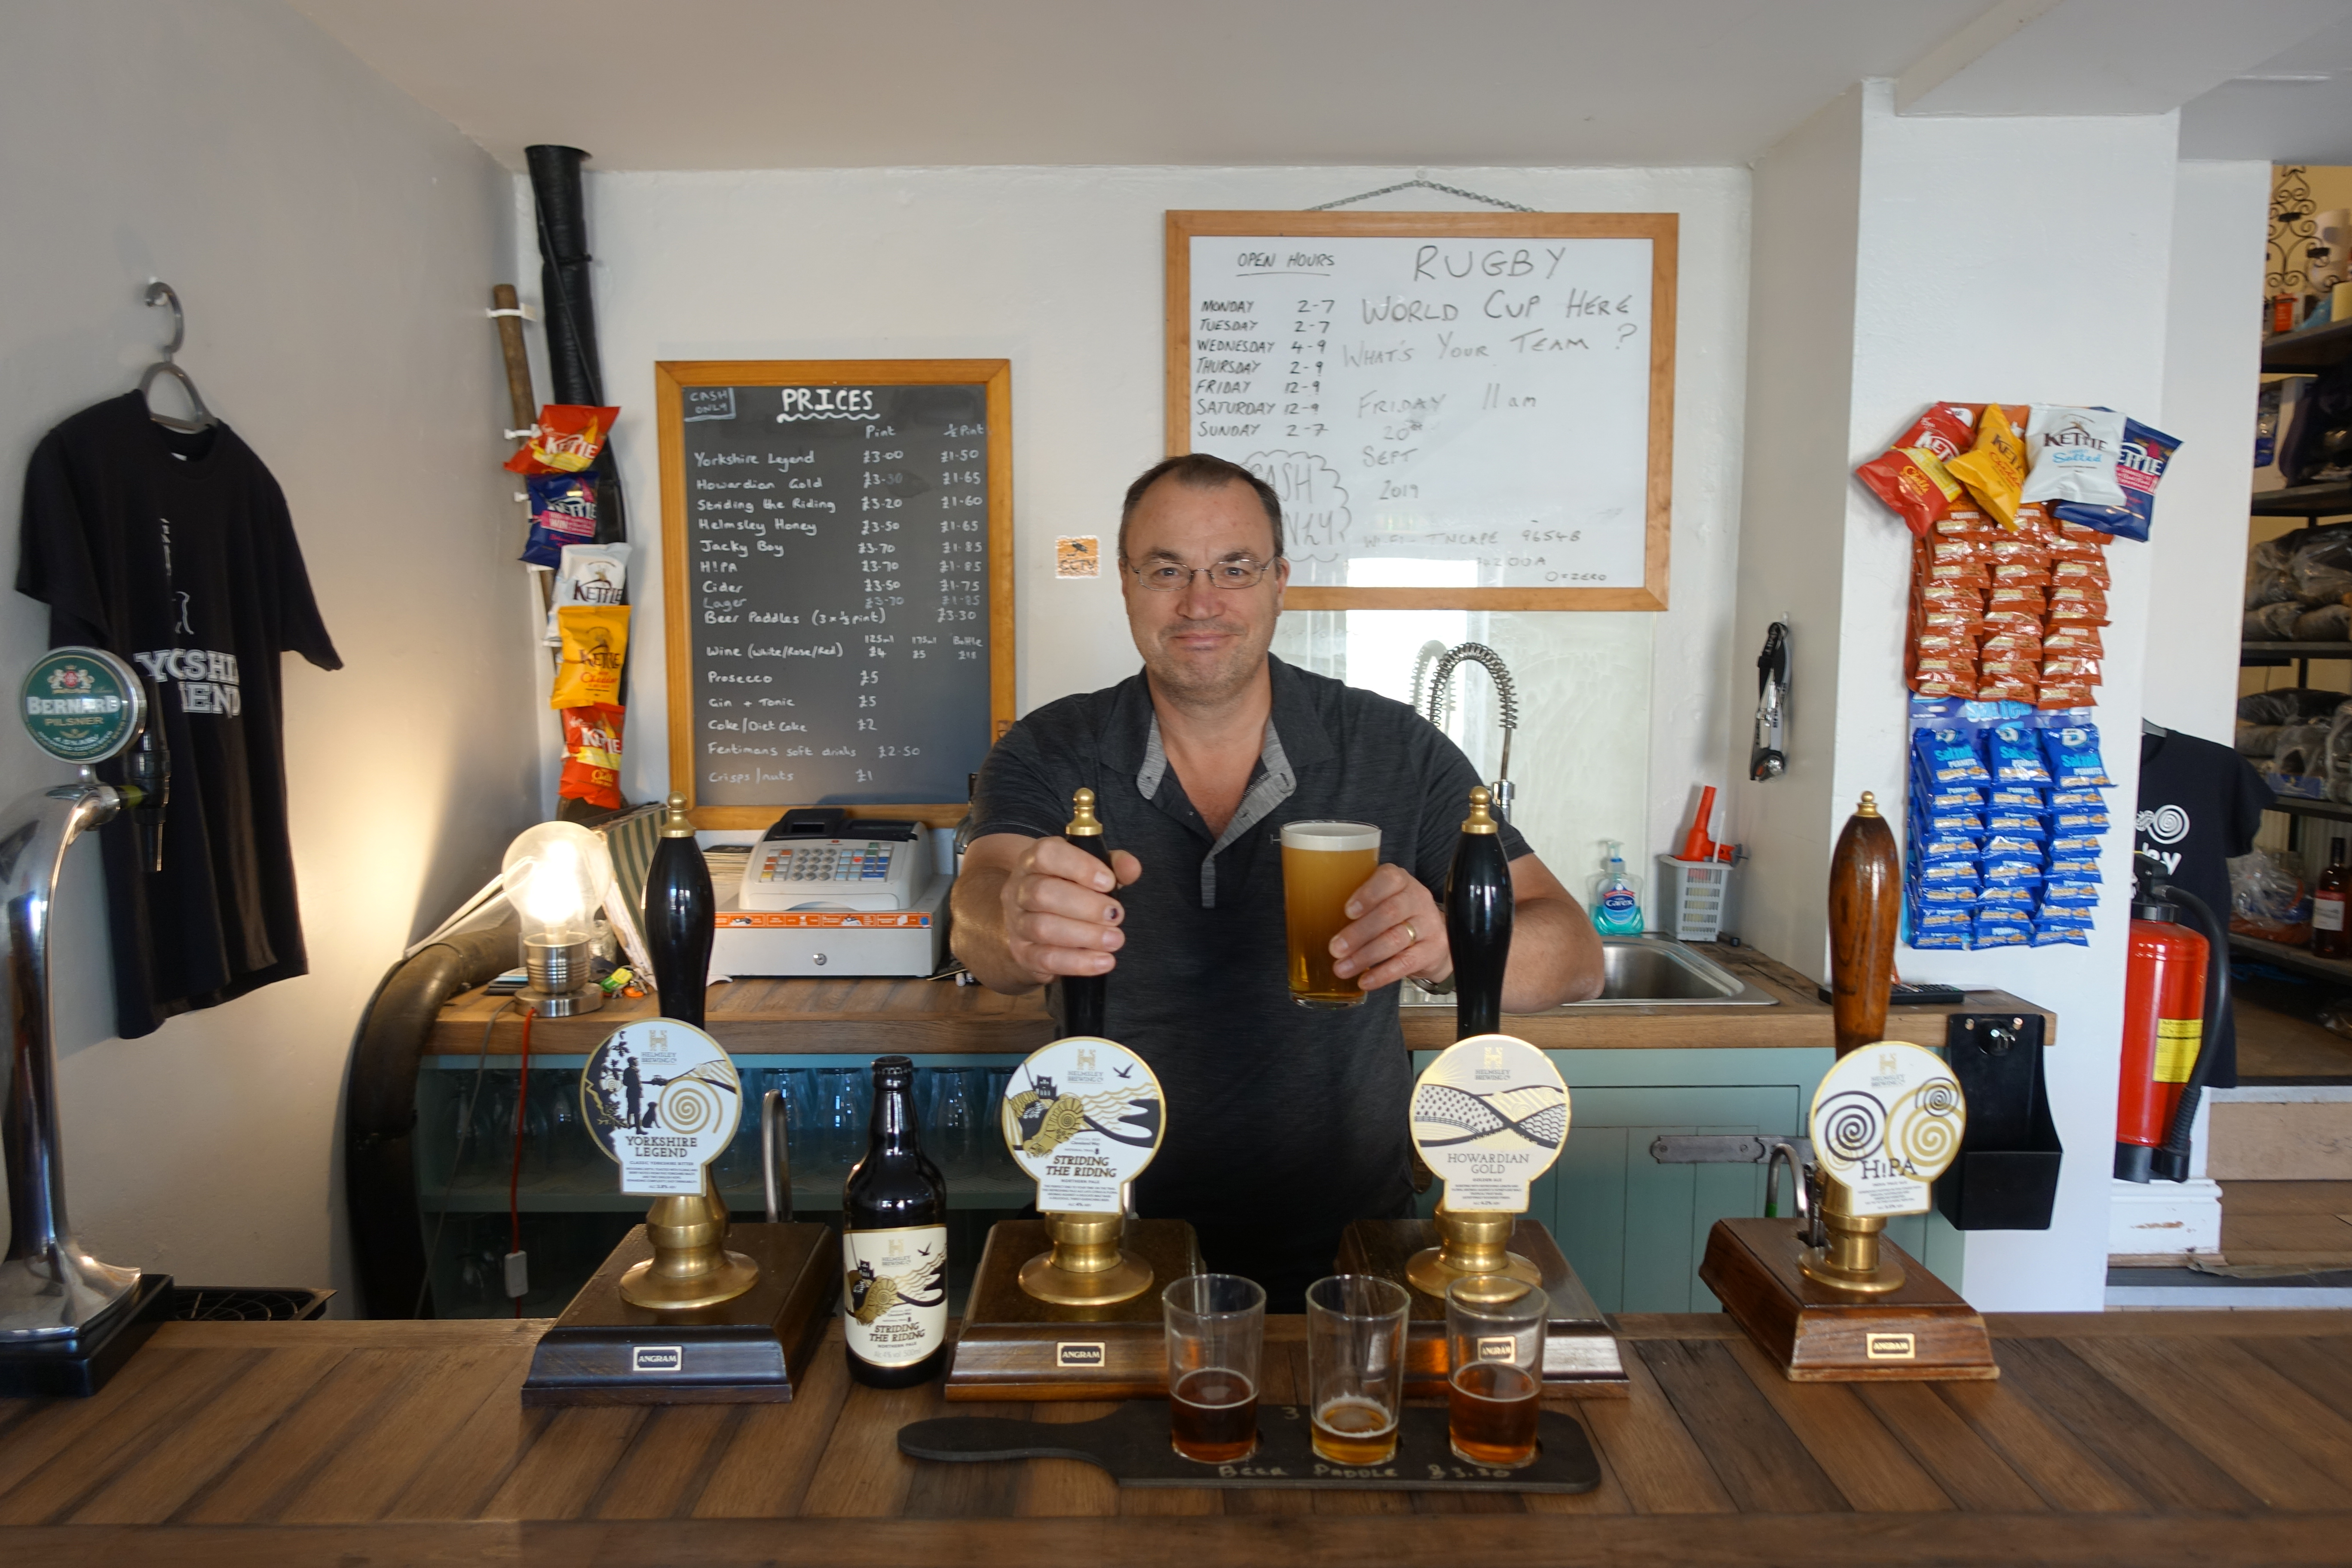 pulling my pint of the excellent 4% 'Striding the Ridge' ale at the Helmsley Brewing Company, closely followed by pints of their best-selling 4.2% Howardian Gold and 5.5% H!PA IP